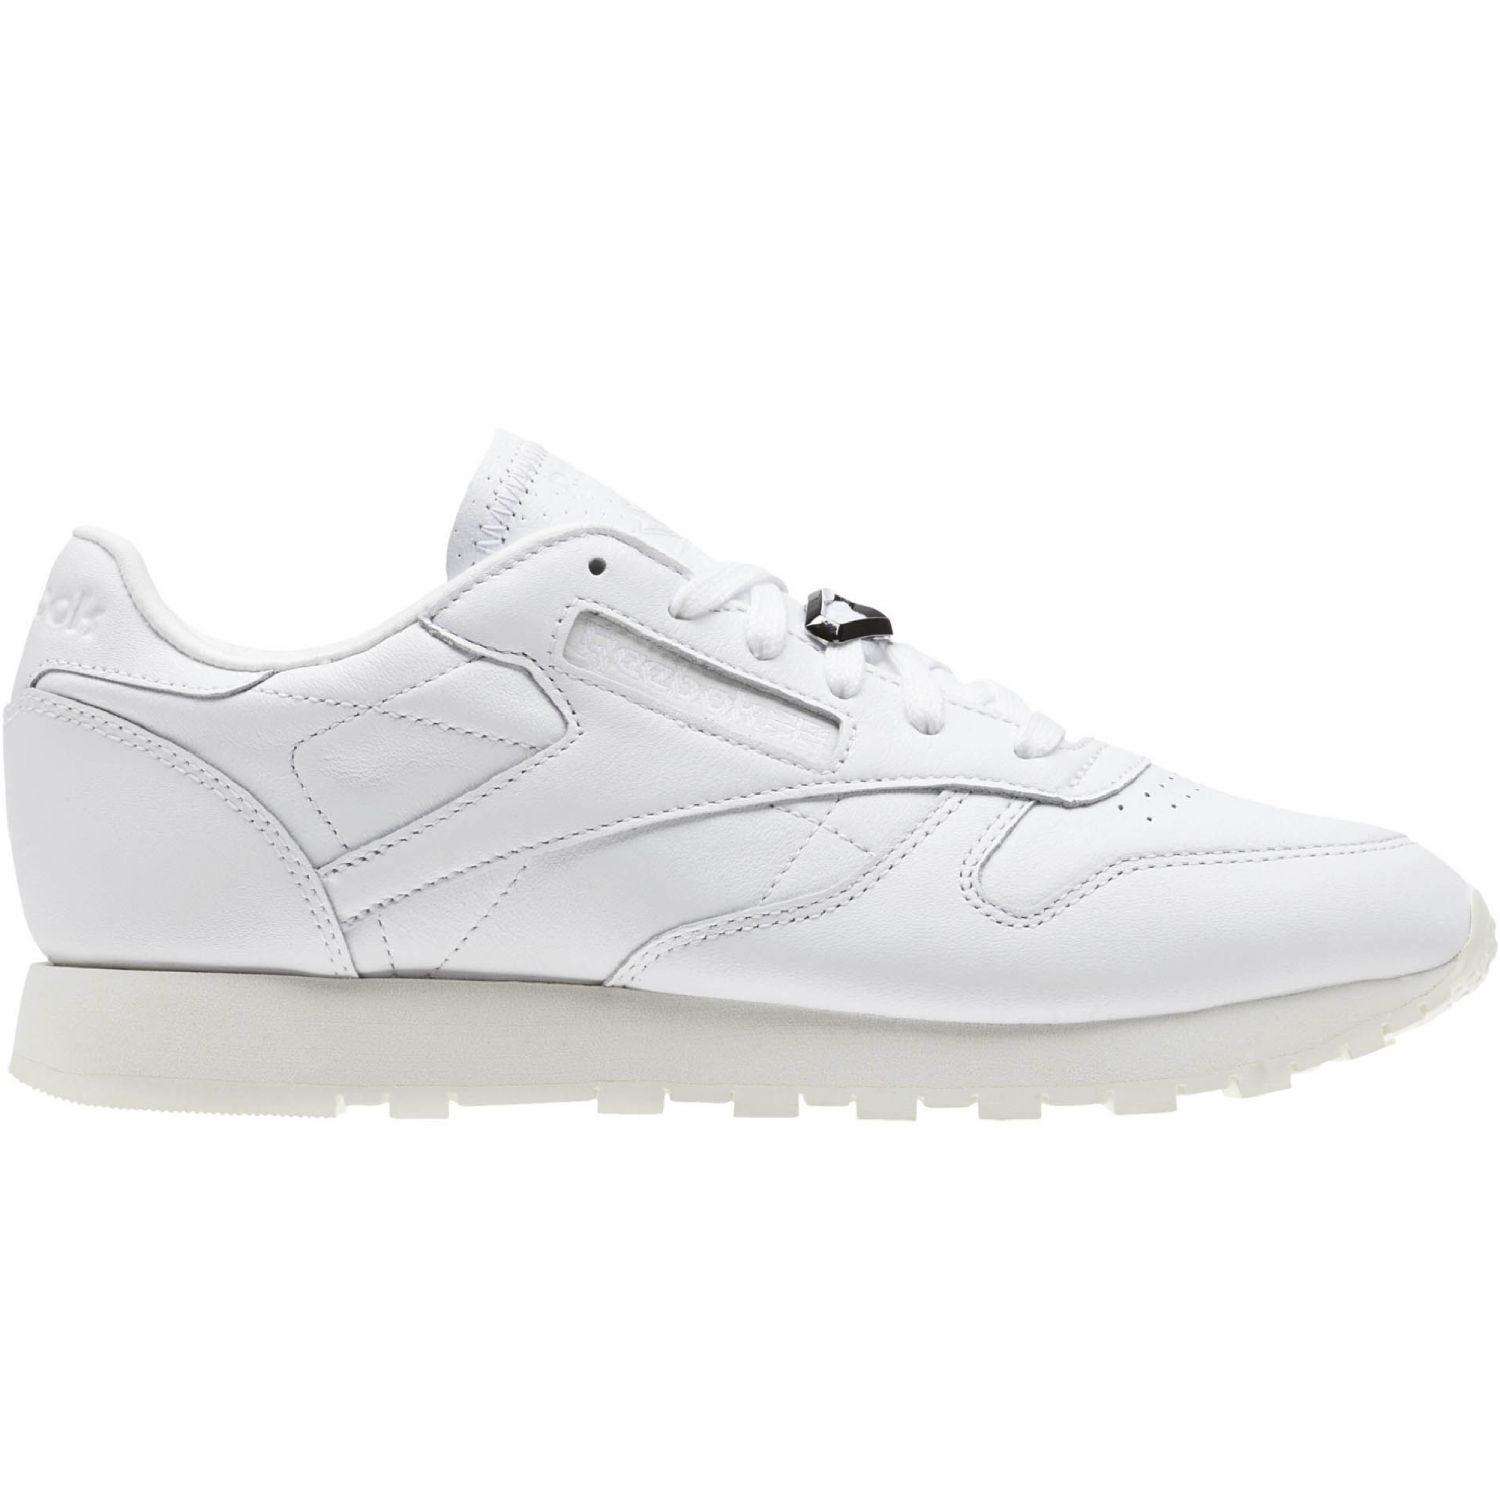 Reebok Classic Leather Hardware Sneaker